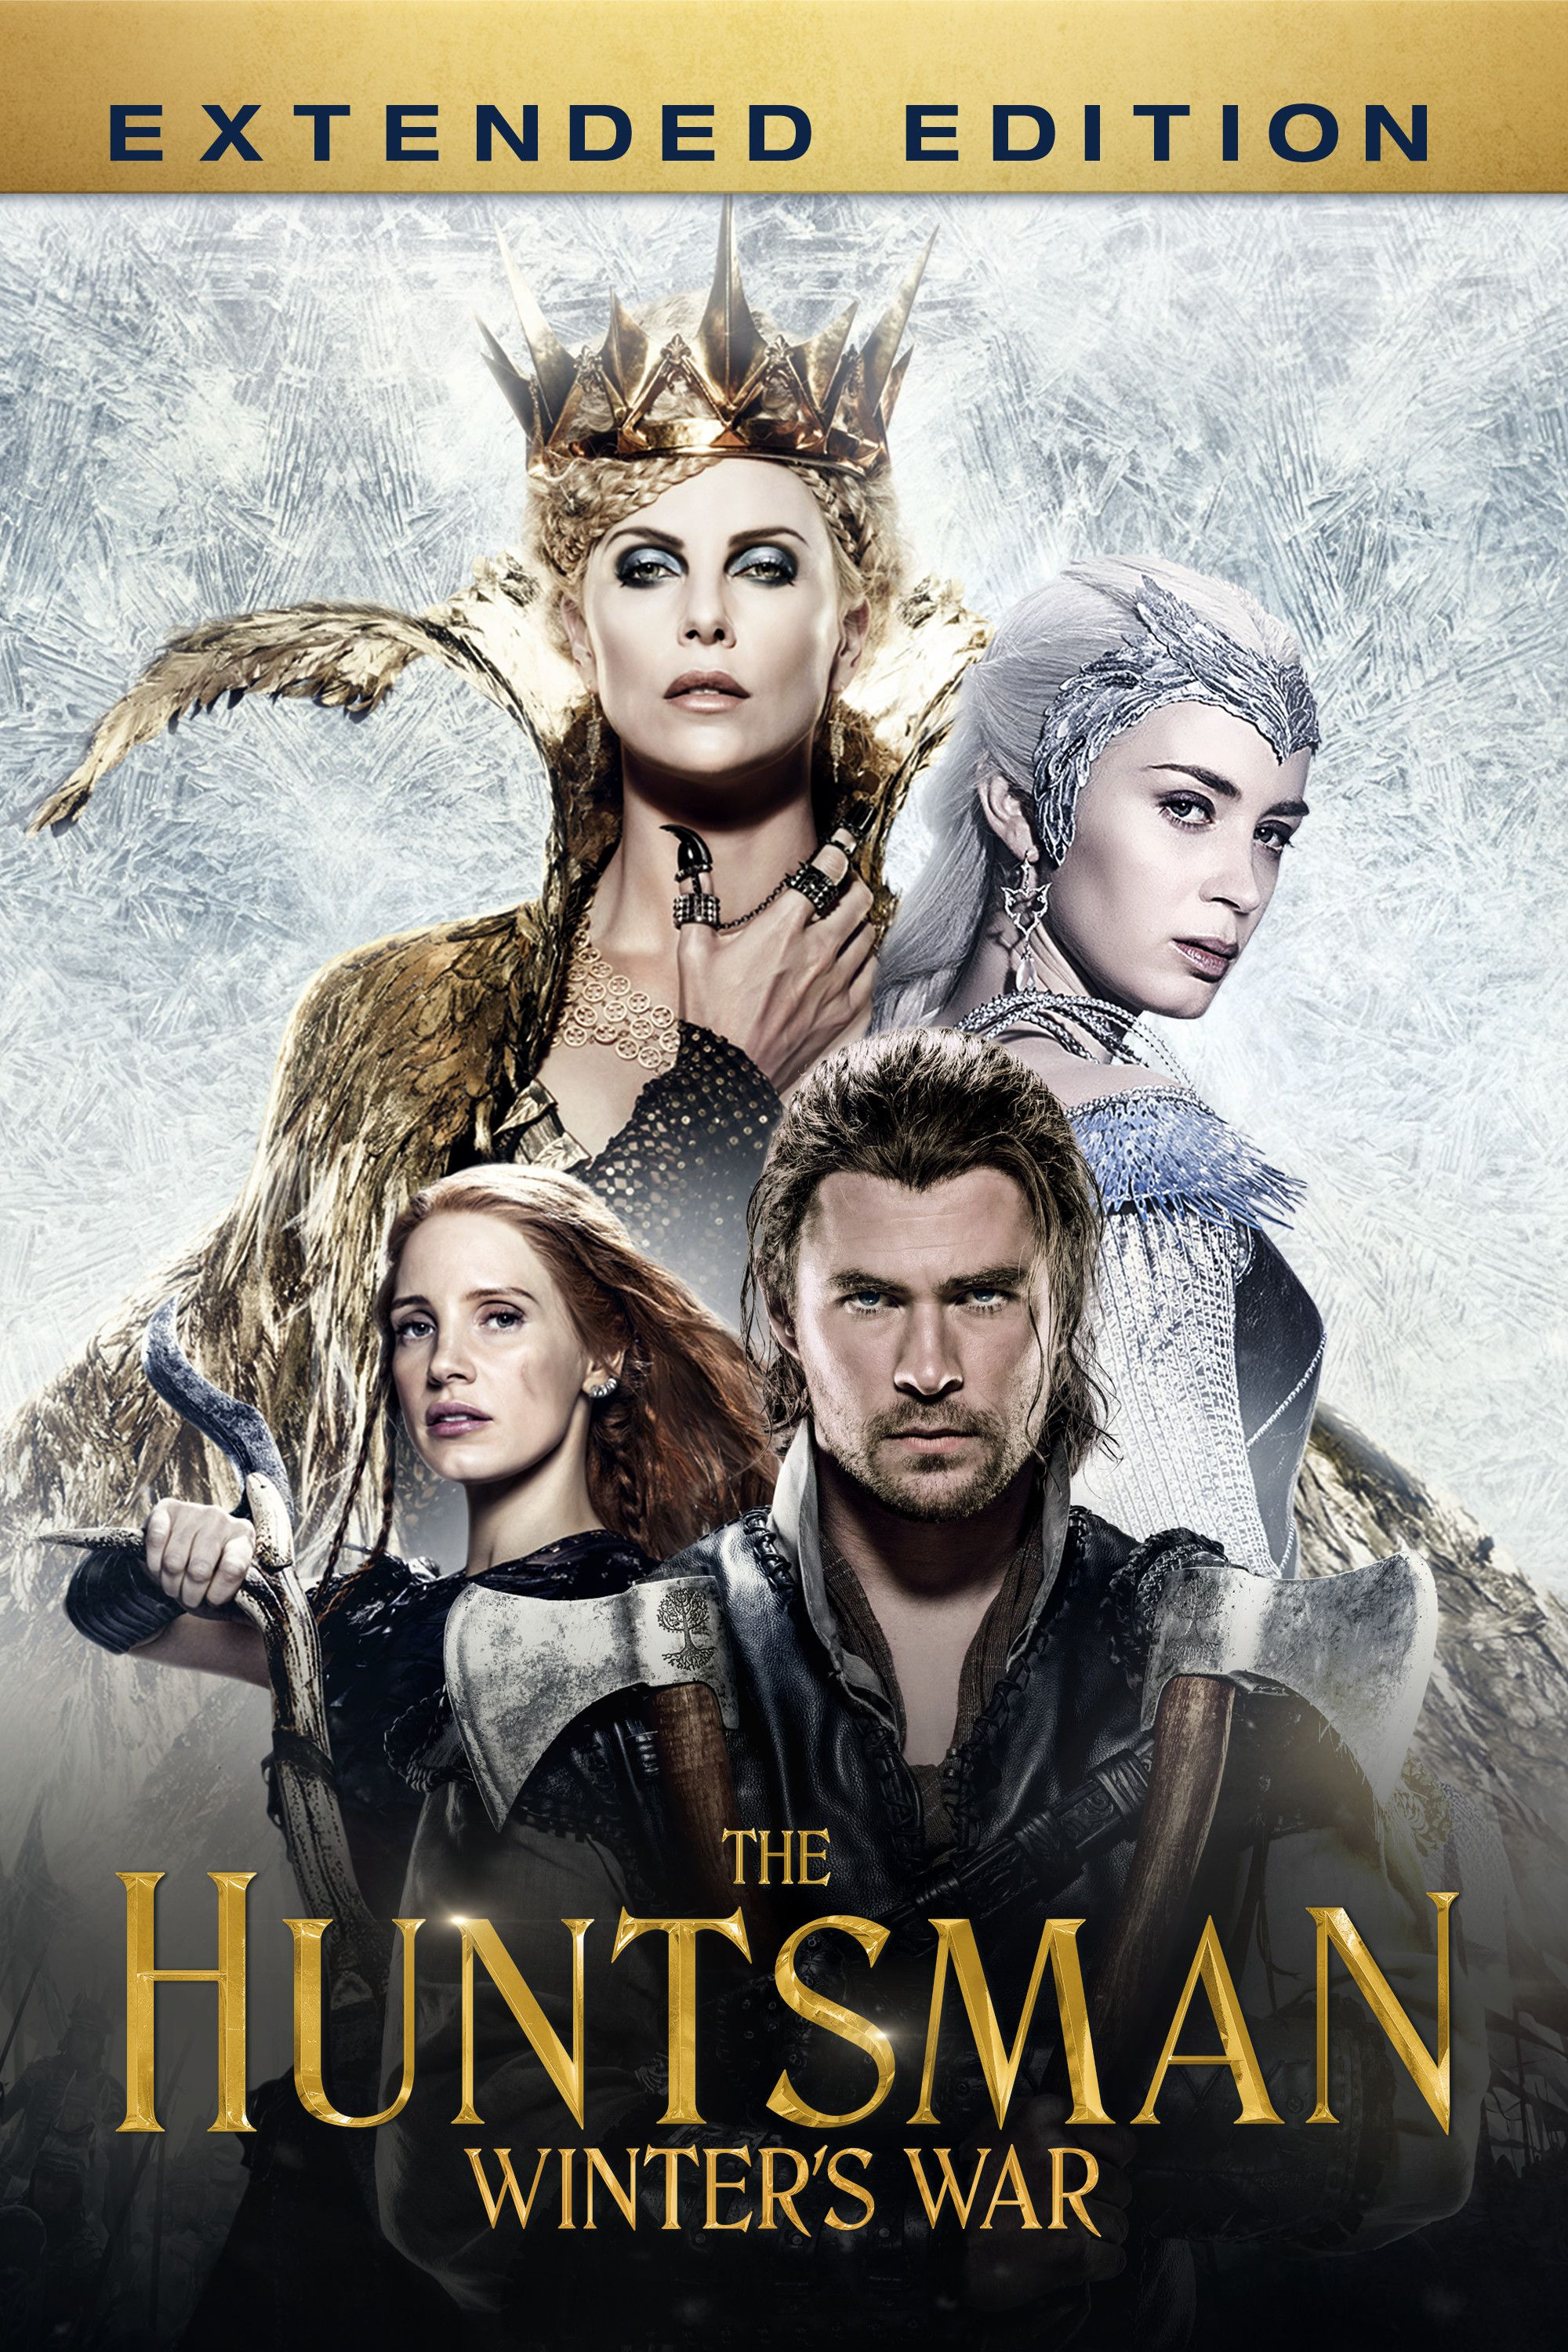 The Huntsman Winter's War (Extended Edition) Movie Poster